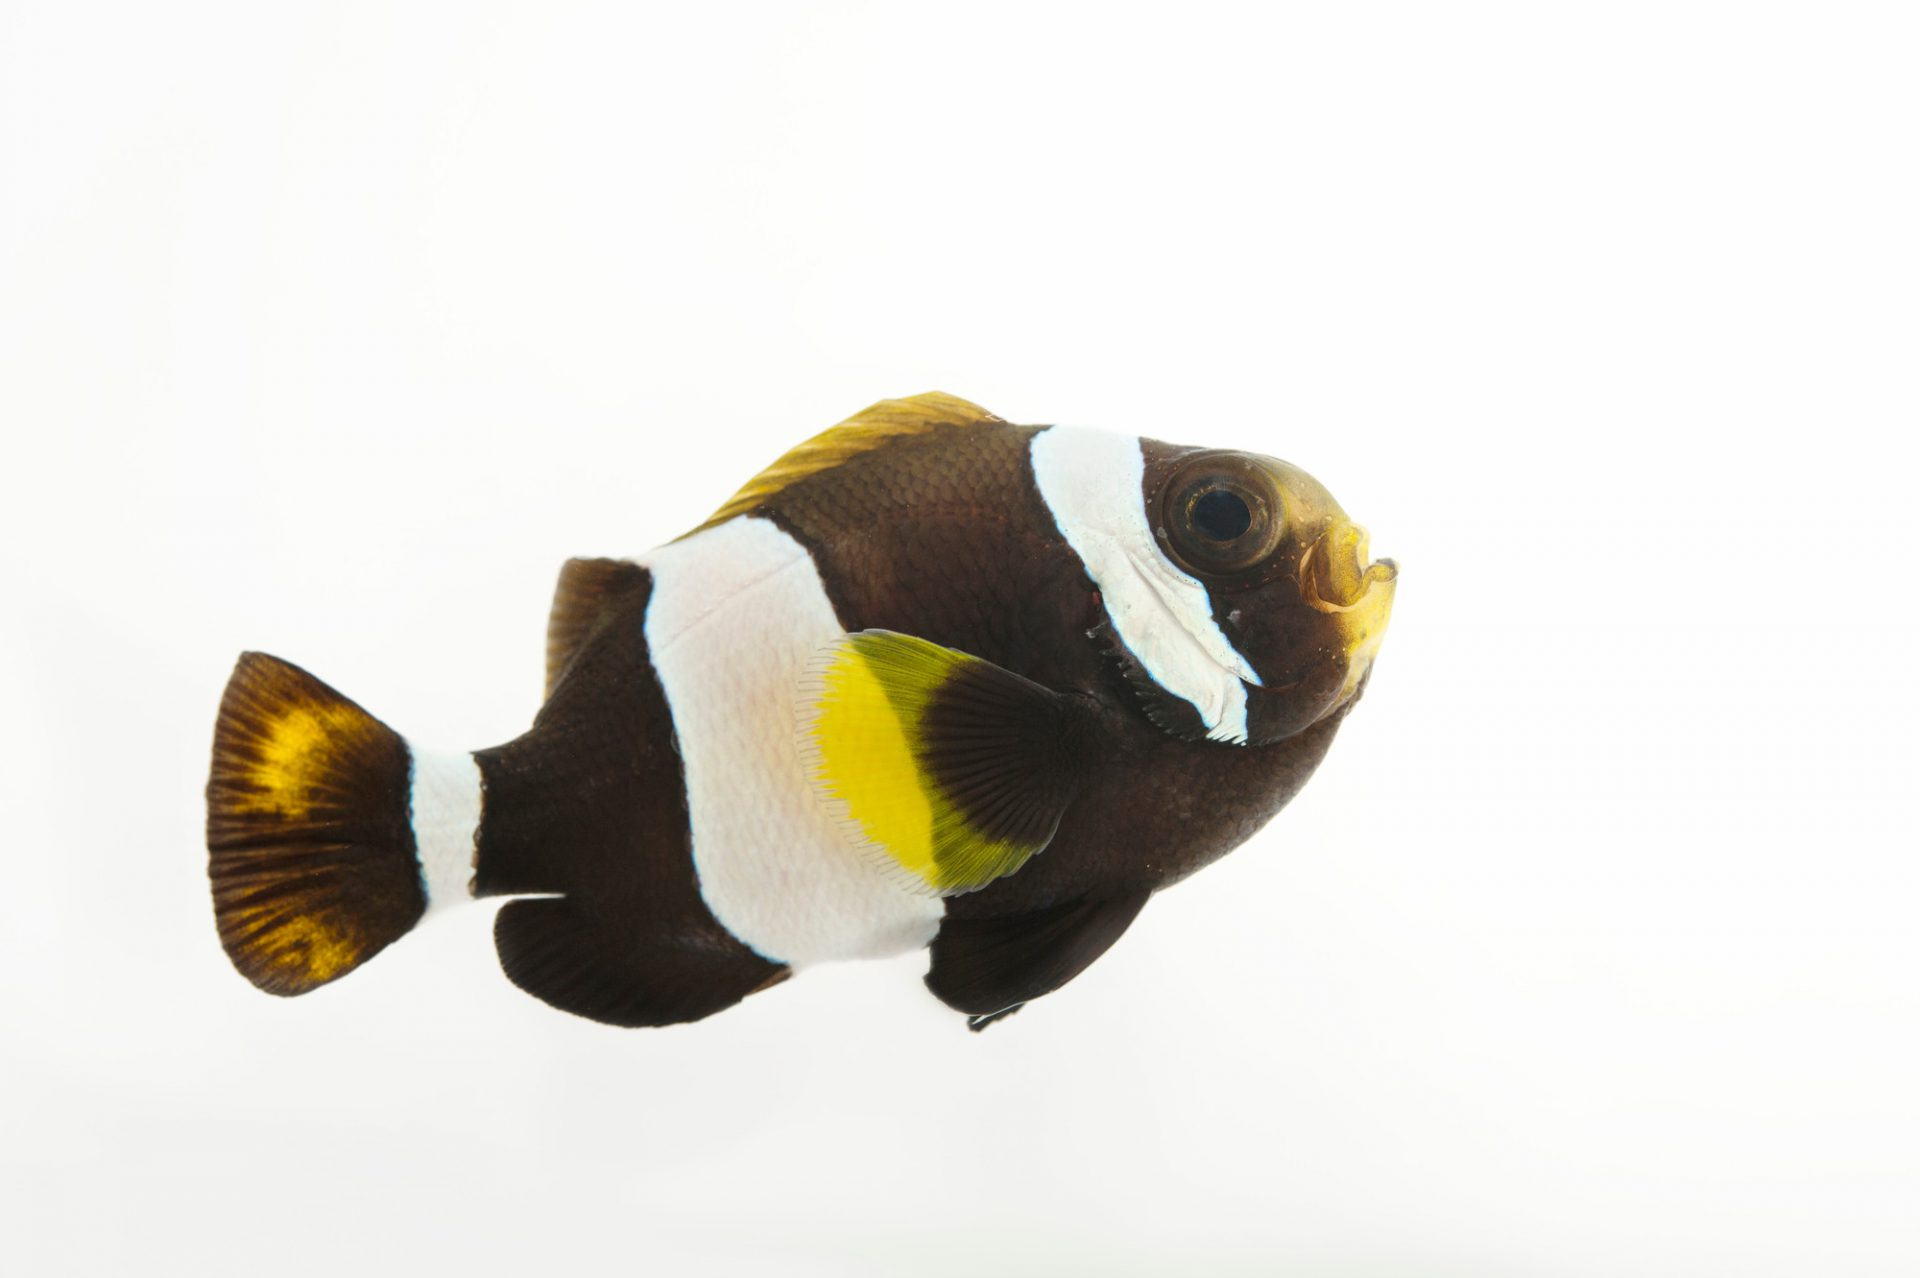 Picture of a wide-banded anemonefish (Amphiprion latezonatus) at the Dallas World Aquarium.